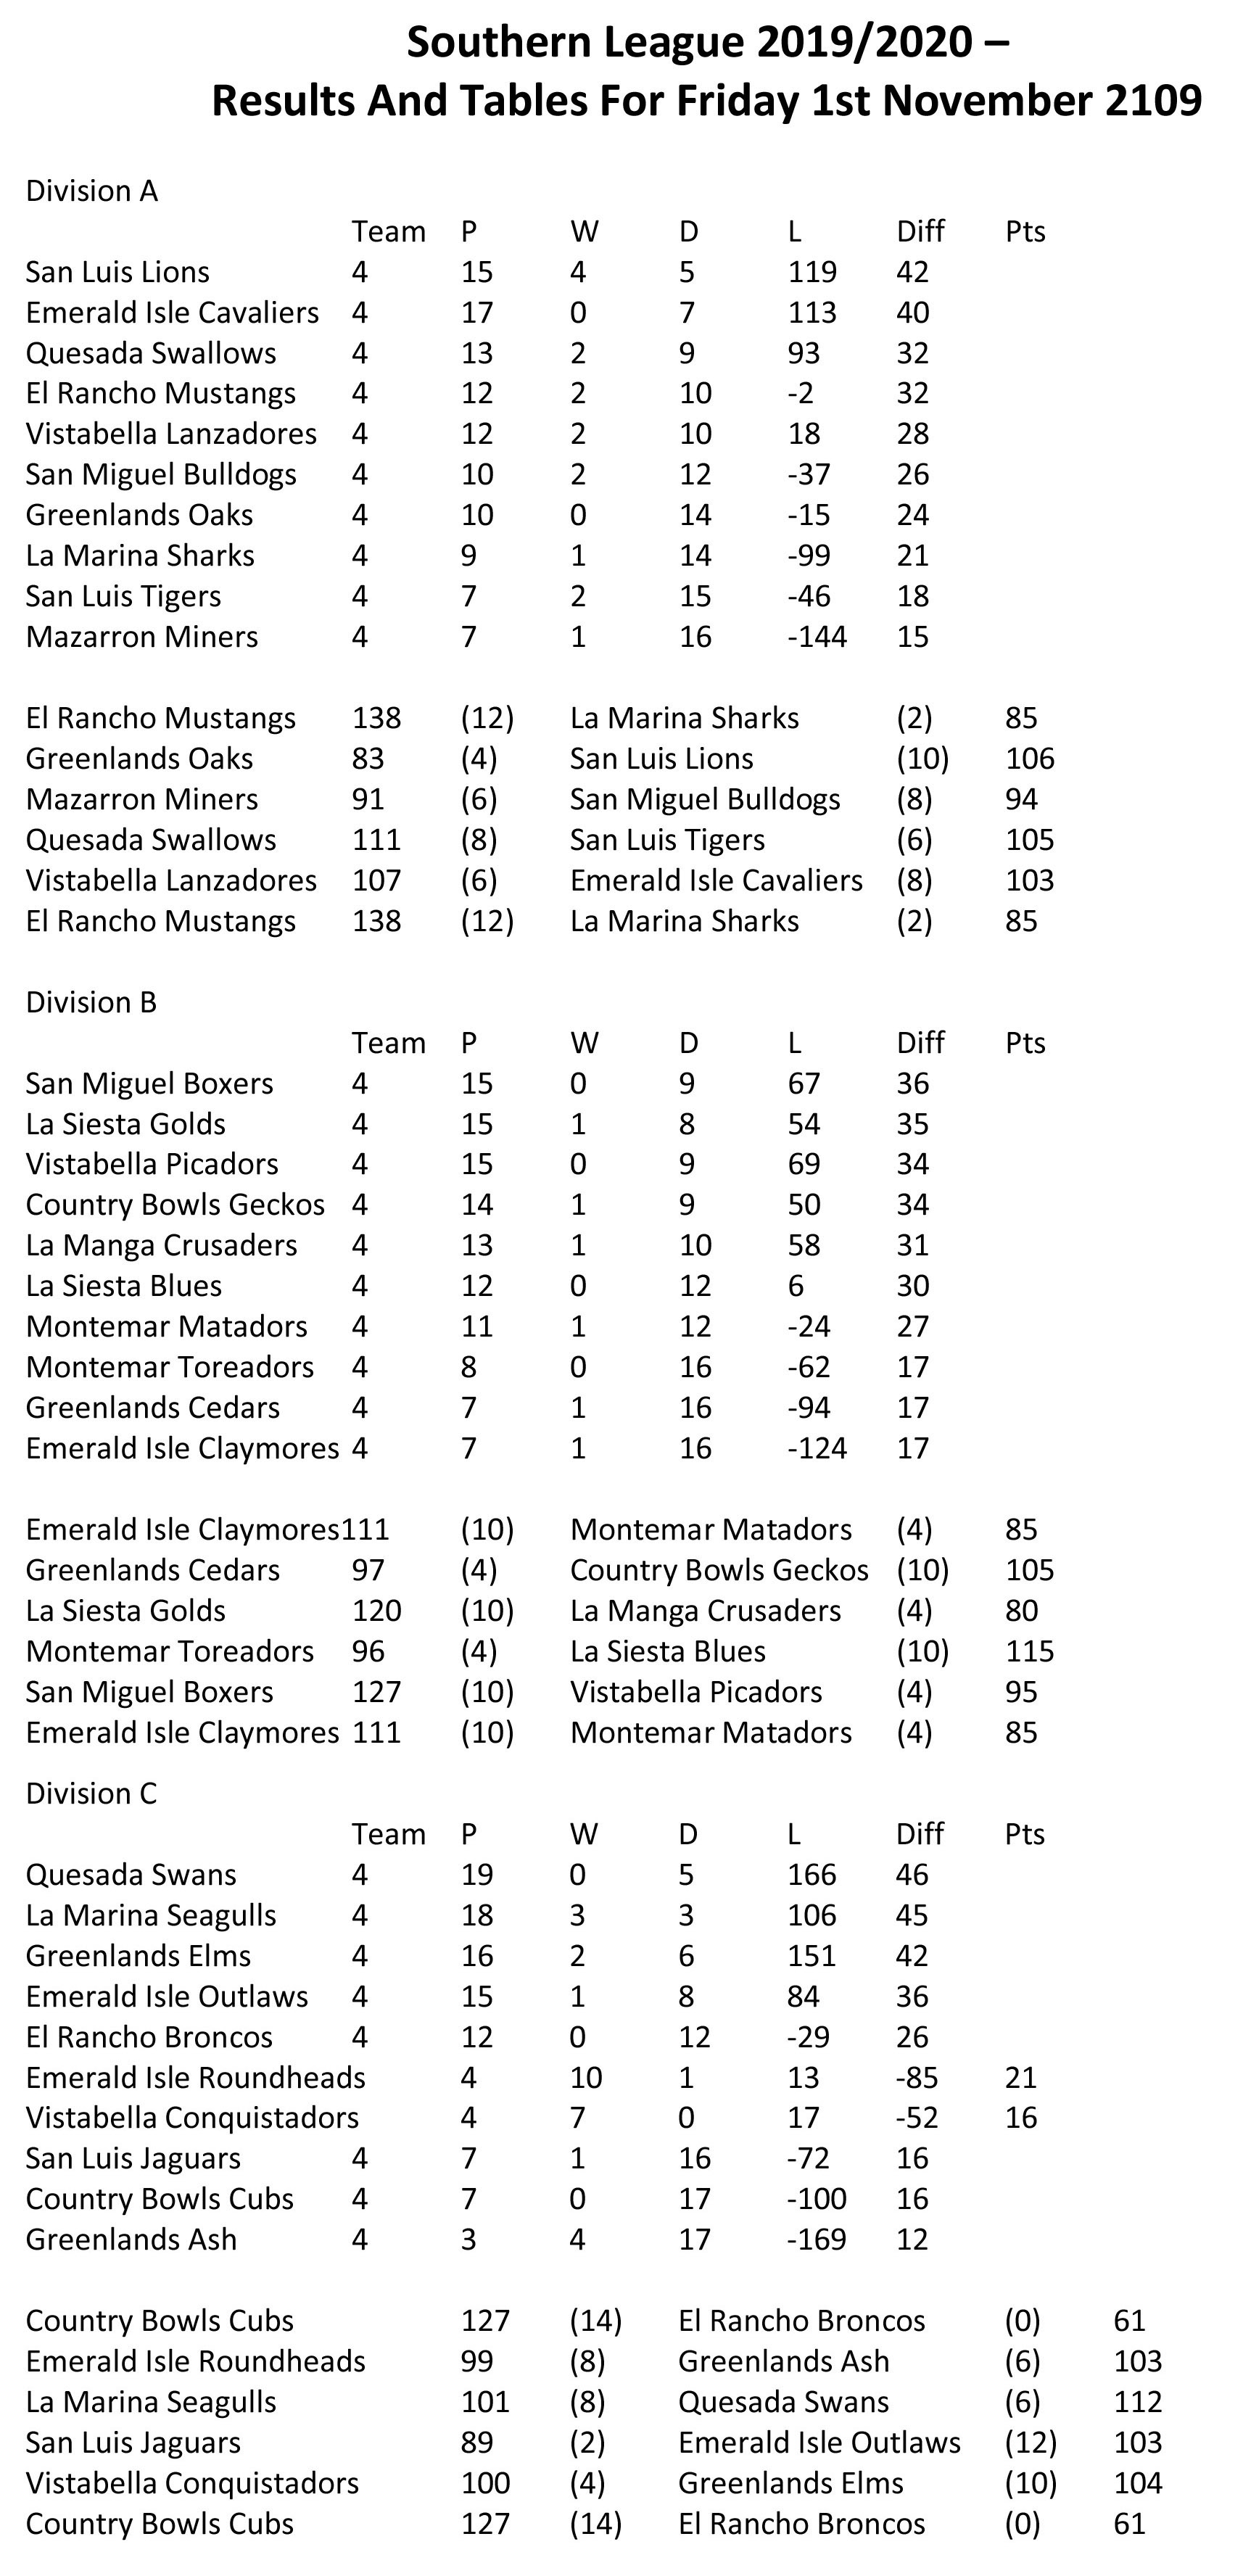 Results and tables